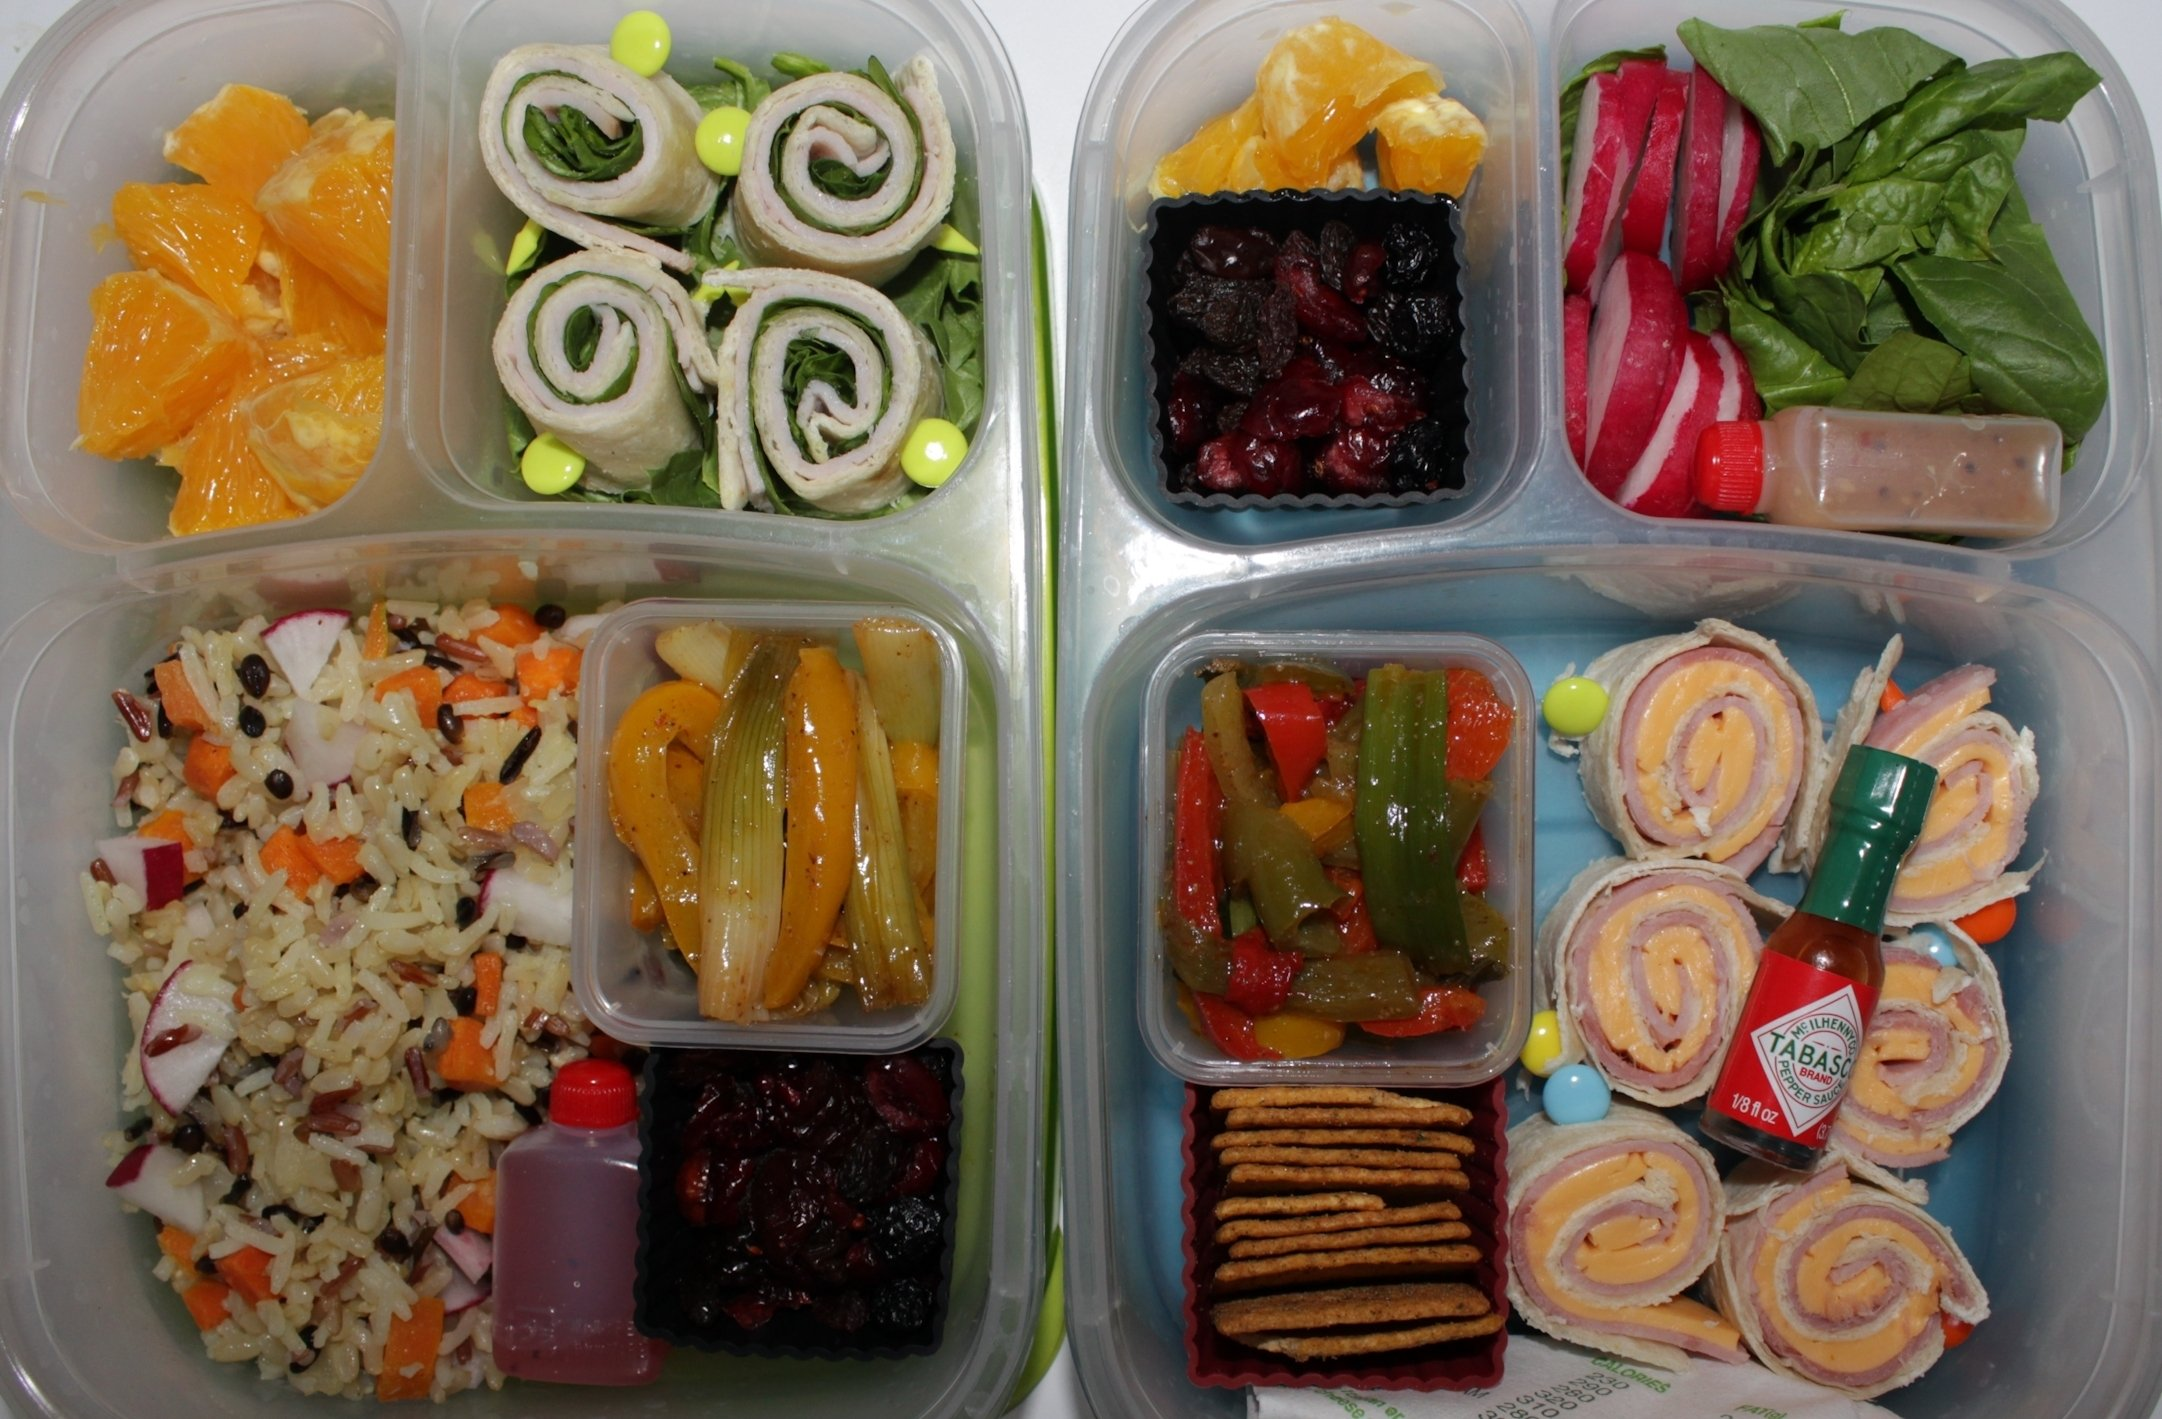 10 Stylish Lunch Ideas For High School questing for lunches bento boxes accessories and meal ideas cook 2020